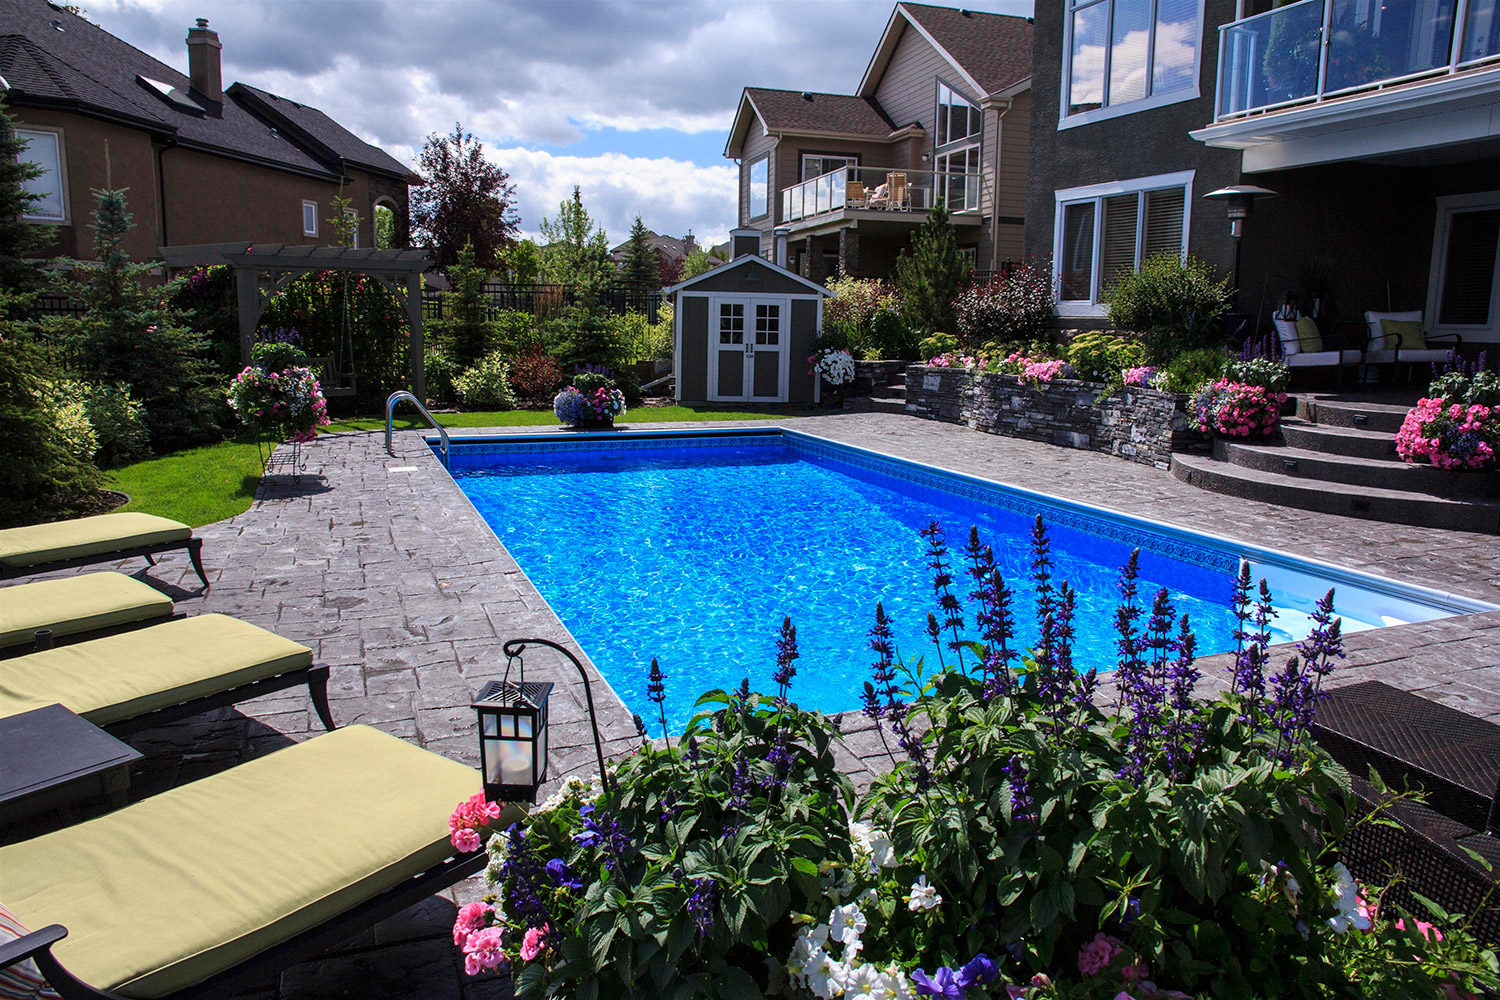 Inground pools and backyard spas are becoming popular landscaping features to add to your Calgary yard.